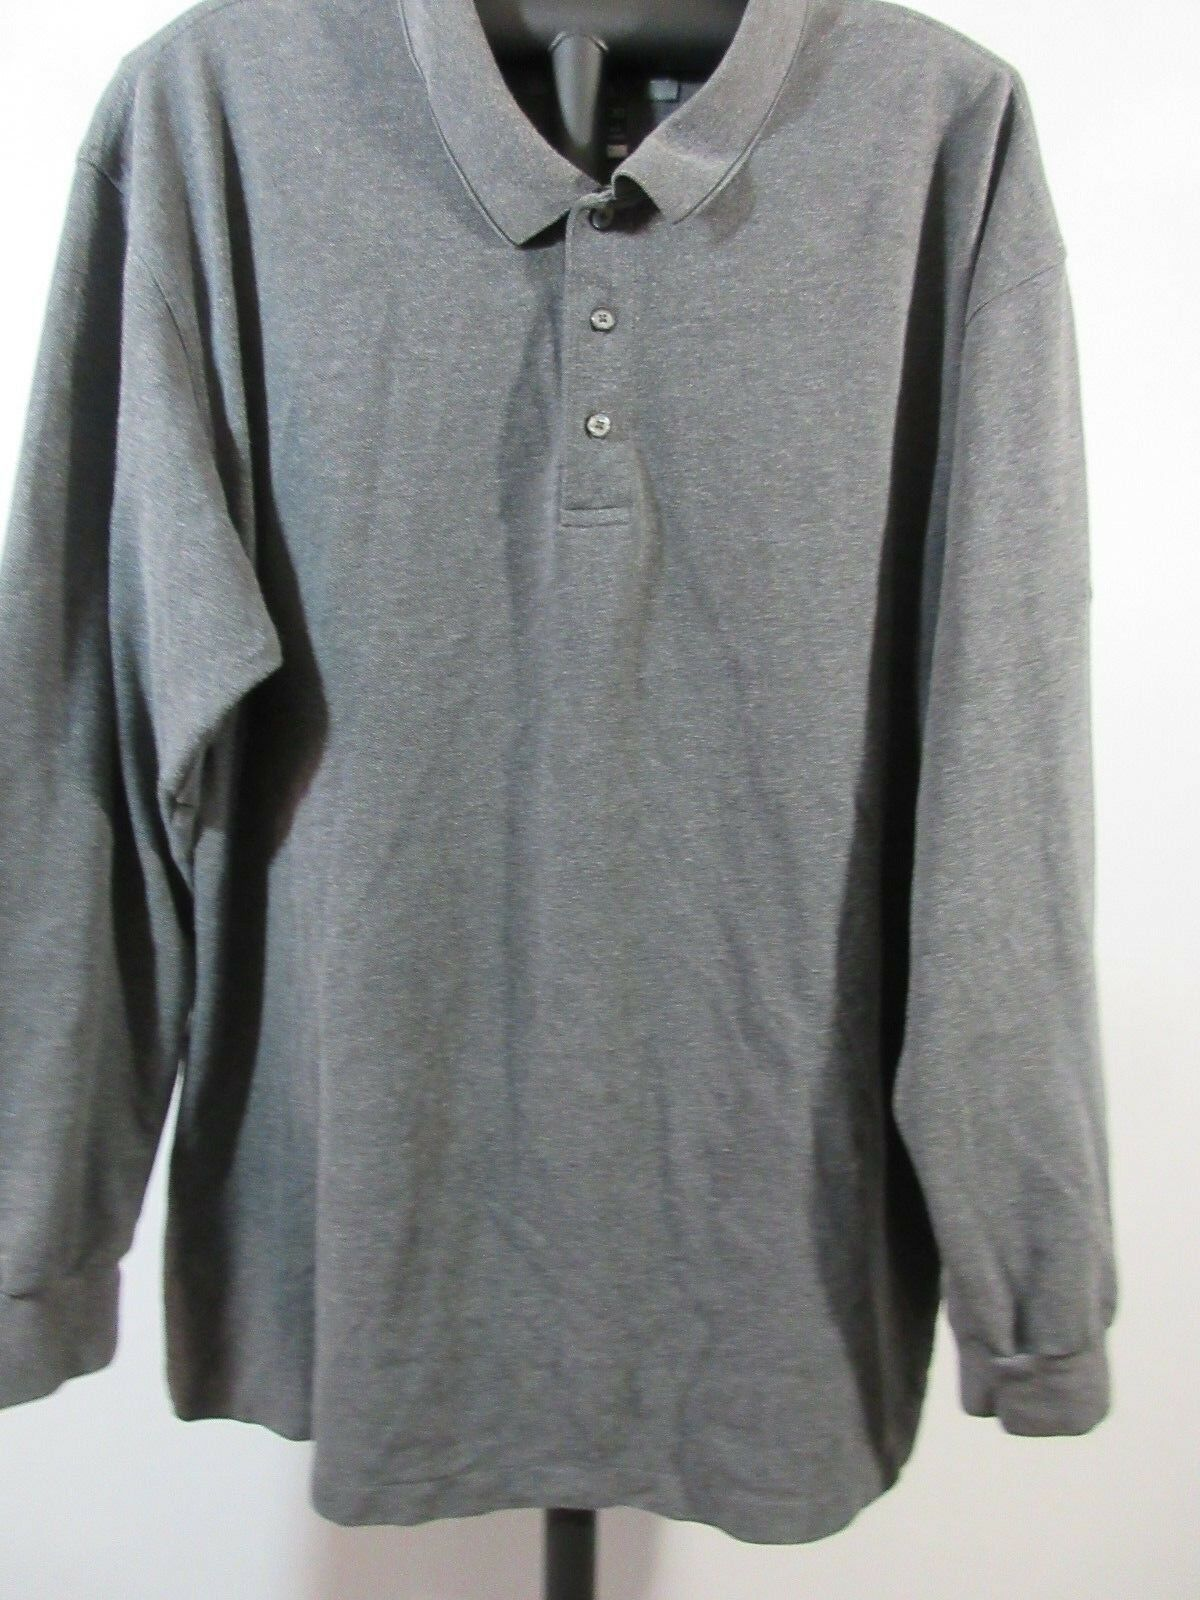 53aeeebe2 Nike Golf Dri-Fit Men's Polo Shirt Solid and 50 similar items. 57